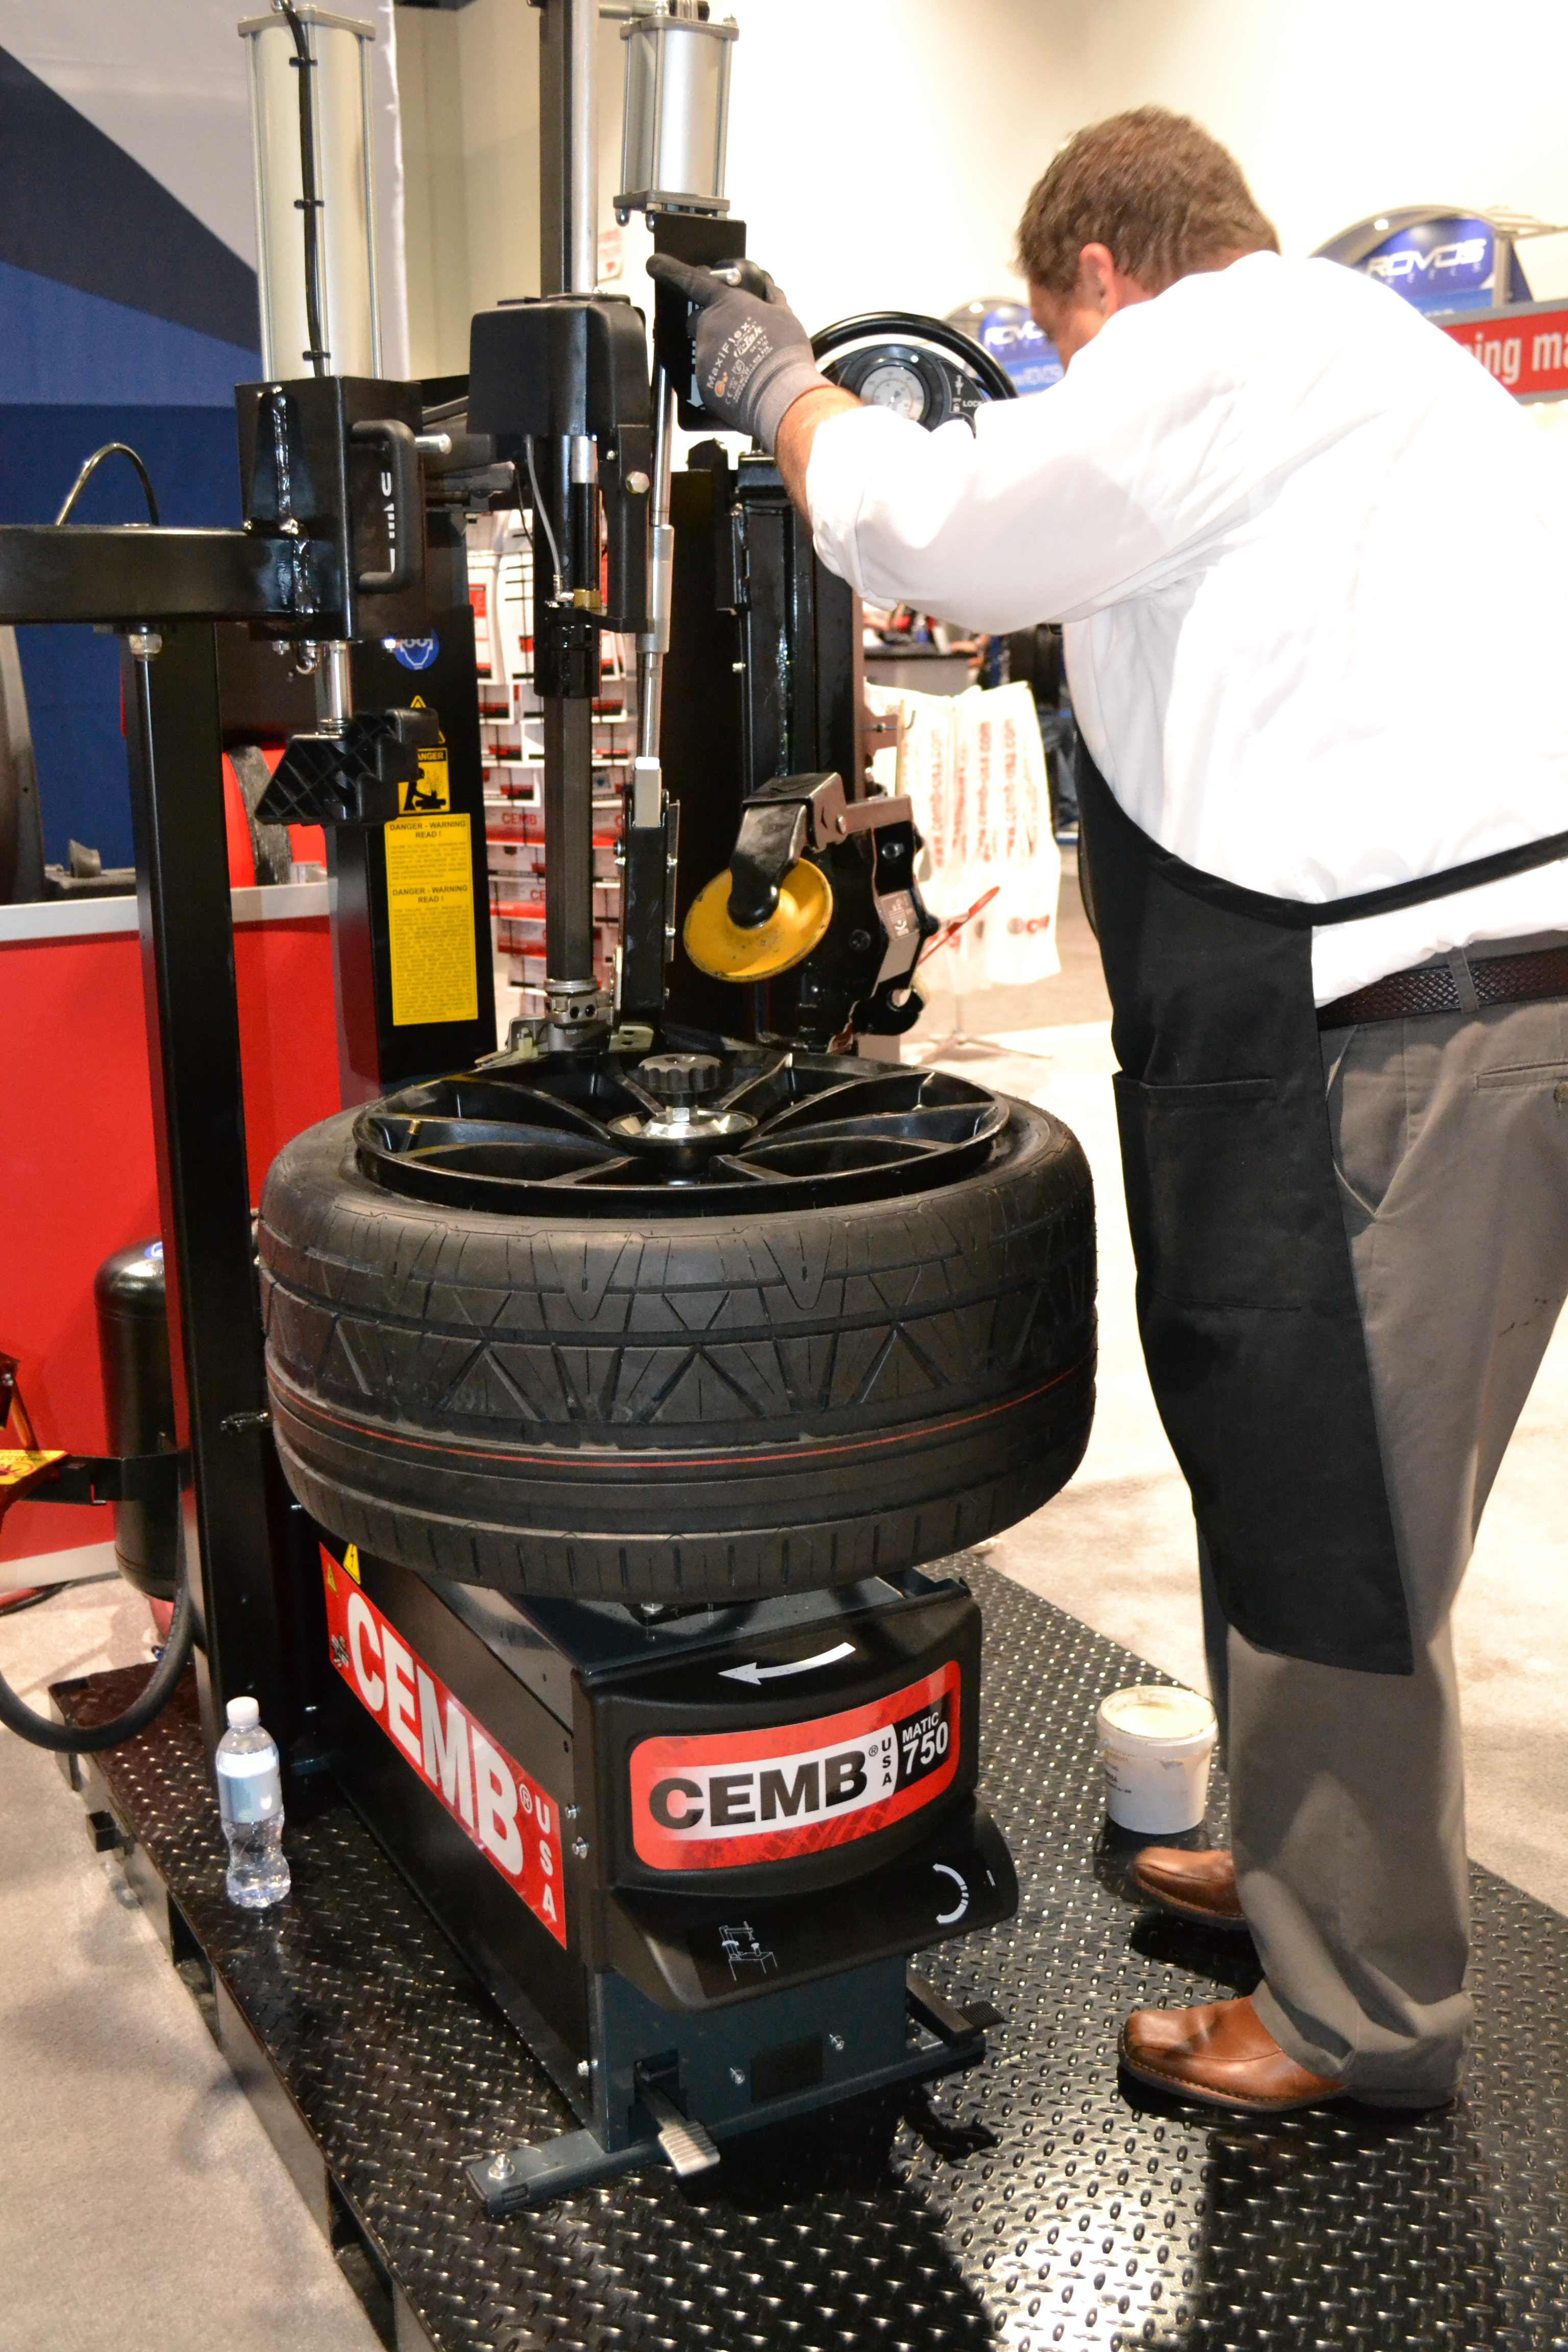 SEMA Show, Day Four: CEMB USA has two new tire changers